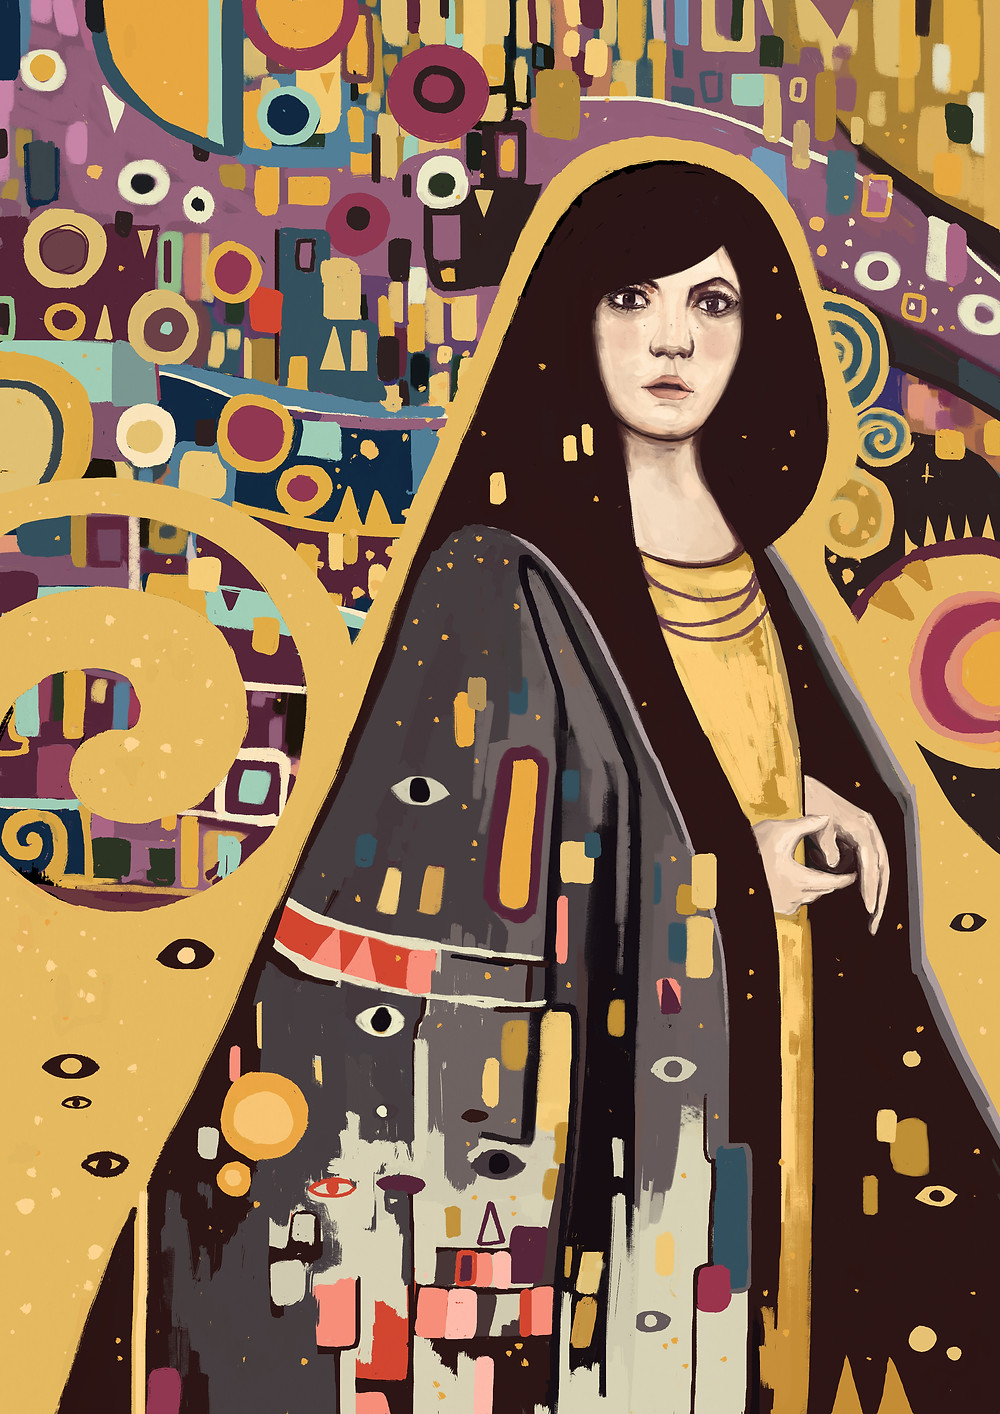 sarah - Last winter I had the chance to see Gustav Klimts paintings in Vienna. This illustration is a tribute to Gustav Klimt - one of my biggest inspiration.